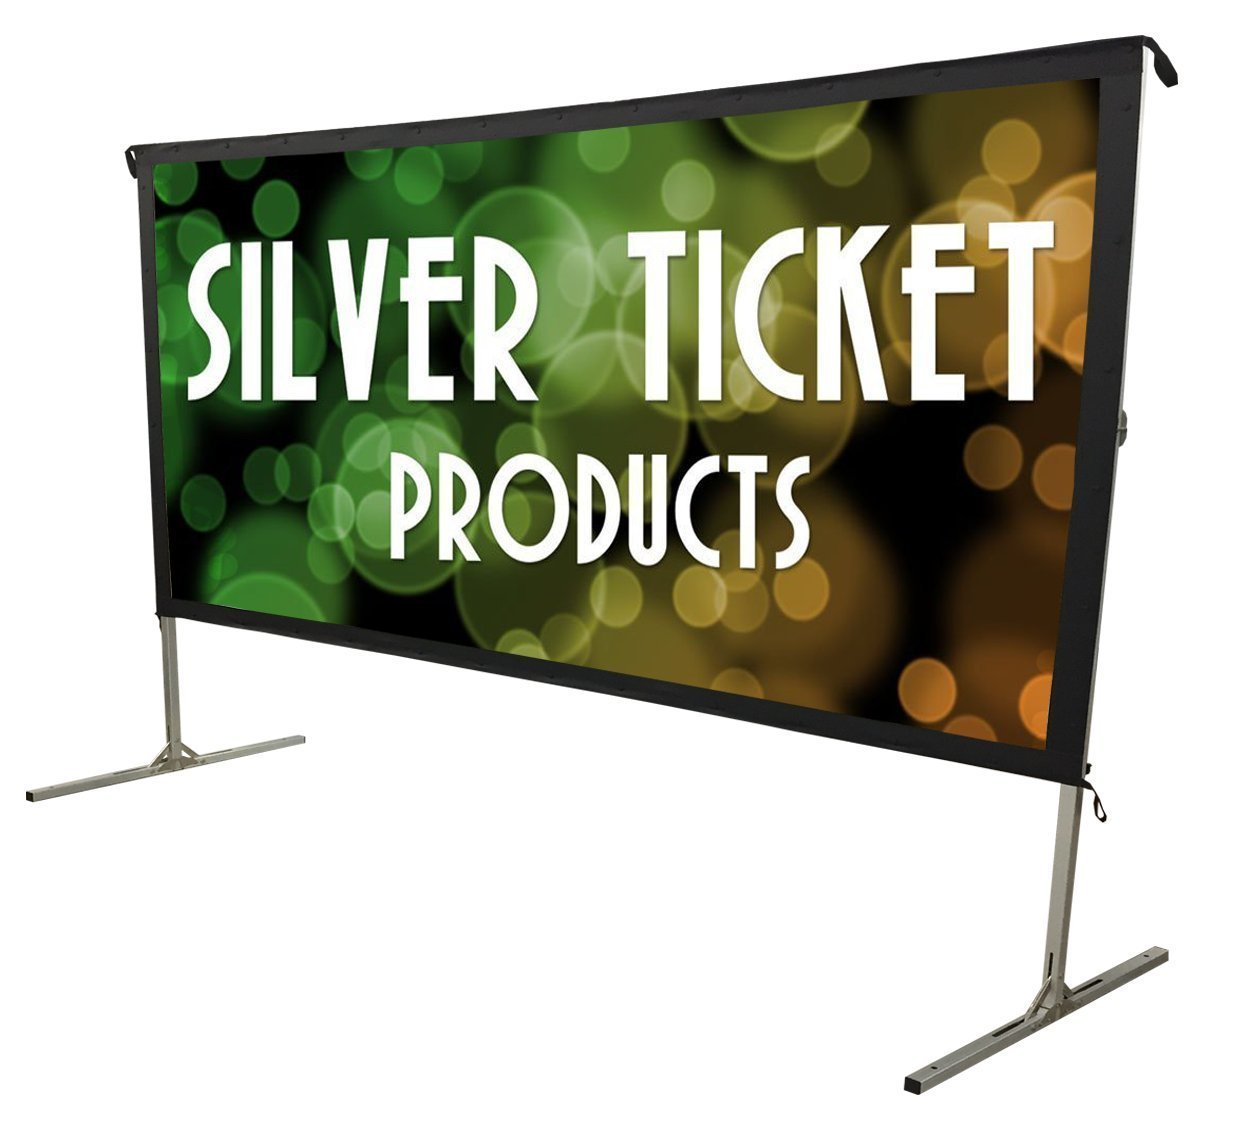 STO-169180 Silver Ticket Indoor / Outdoor 180'' Diagonal 16:9 4K Ultra HD Ready HDTV Movie Projector Screen White Material (STO 16:9, 180) by Silver Ticket Products